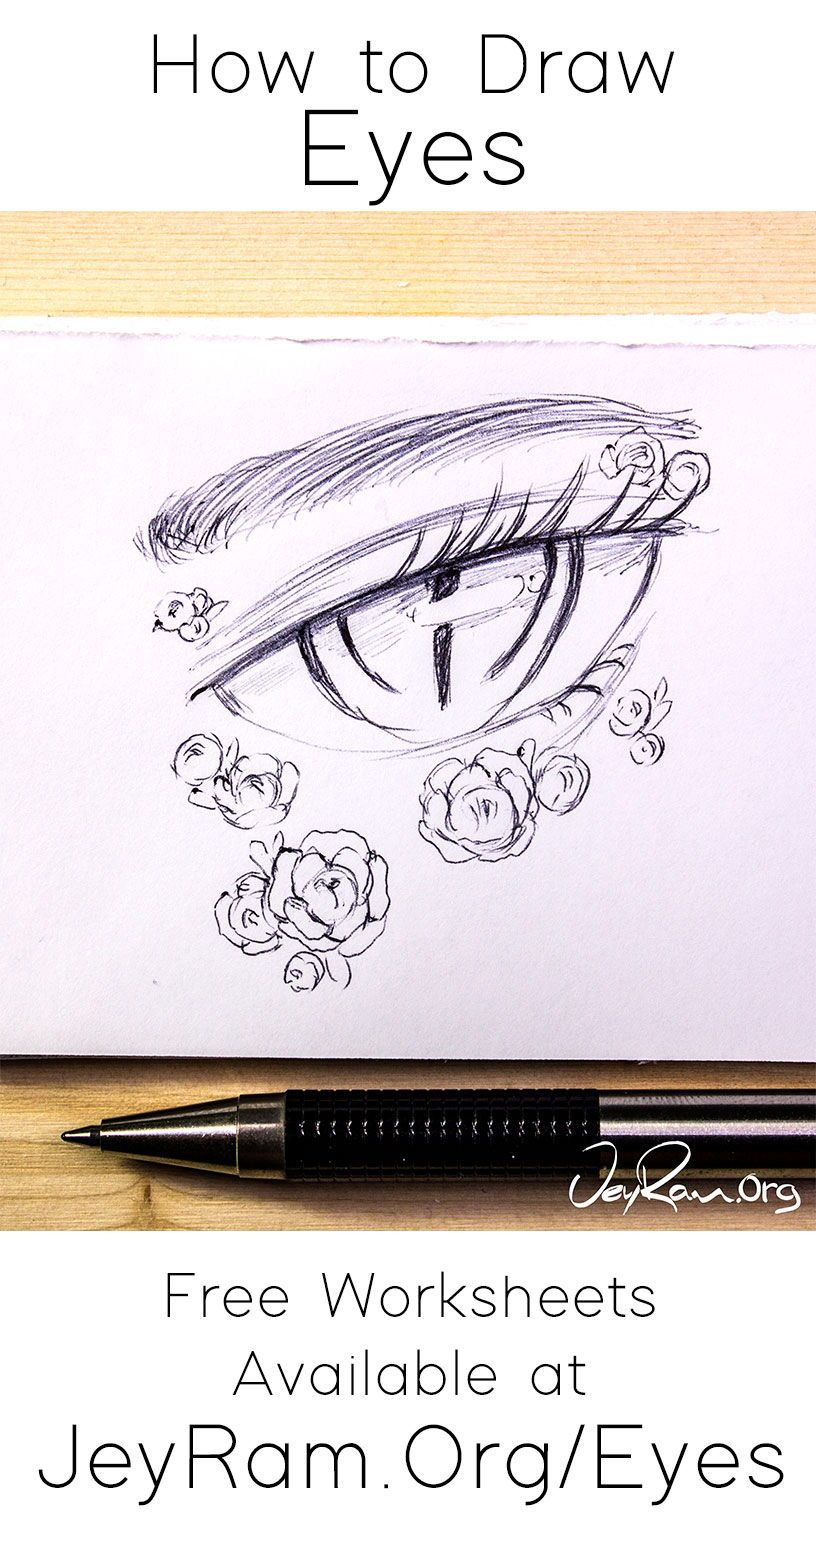 How to draw eyes step by step tutorial for beginners pdf